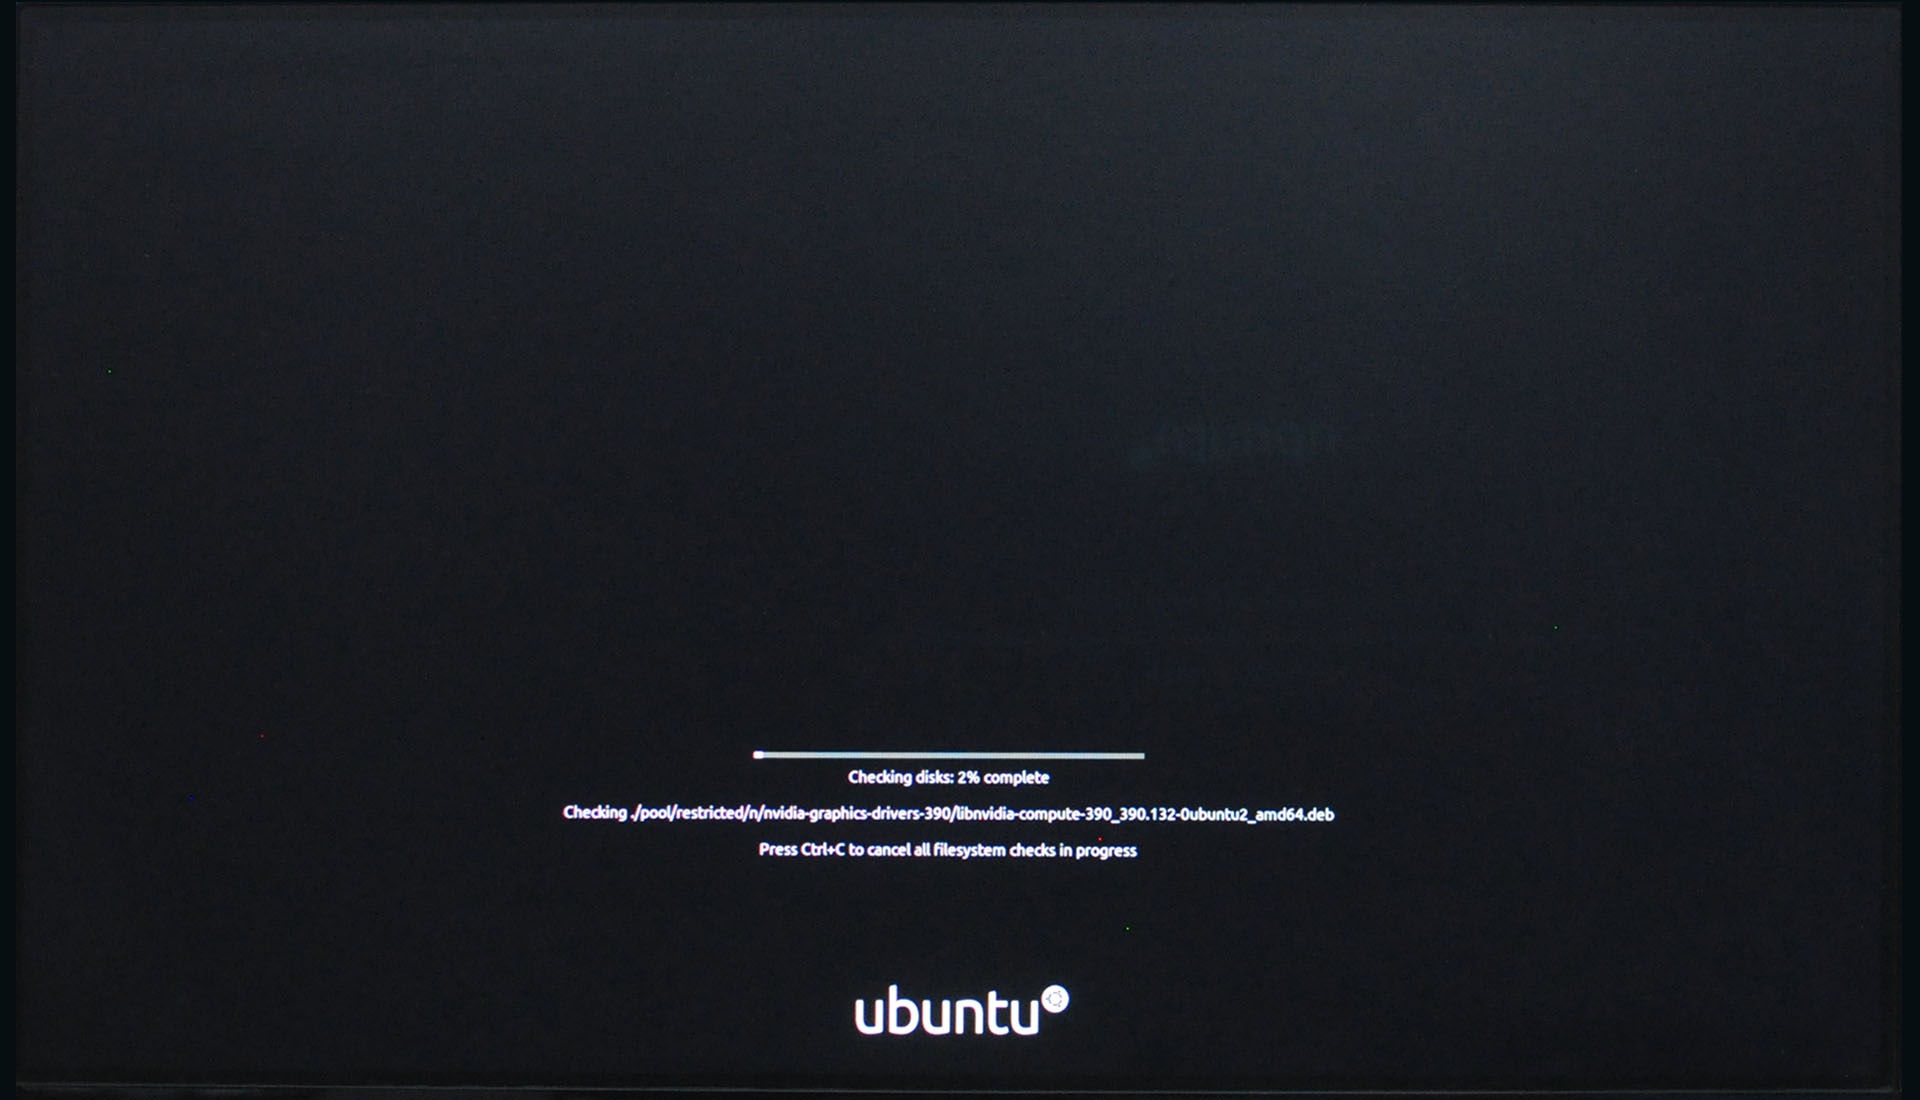 Install Ubuntu 20.04 LTS - Disc Checks